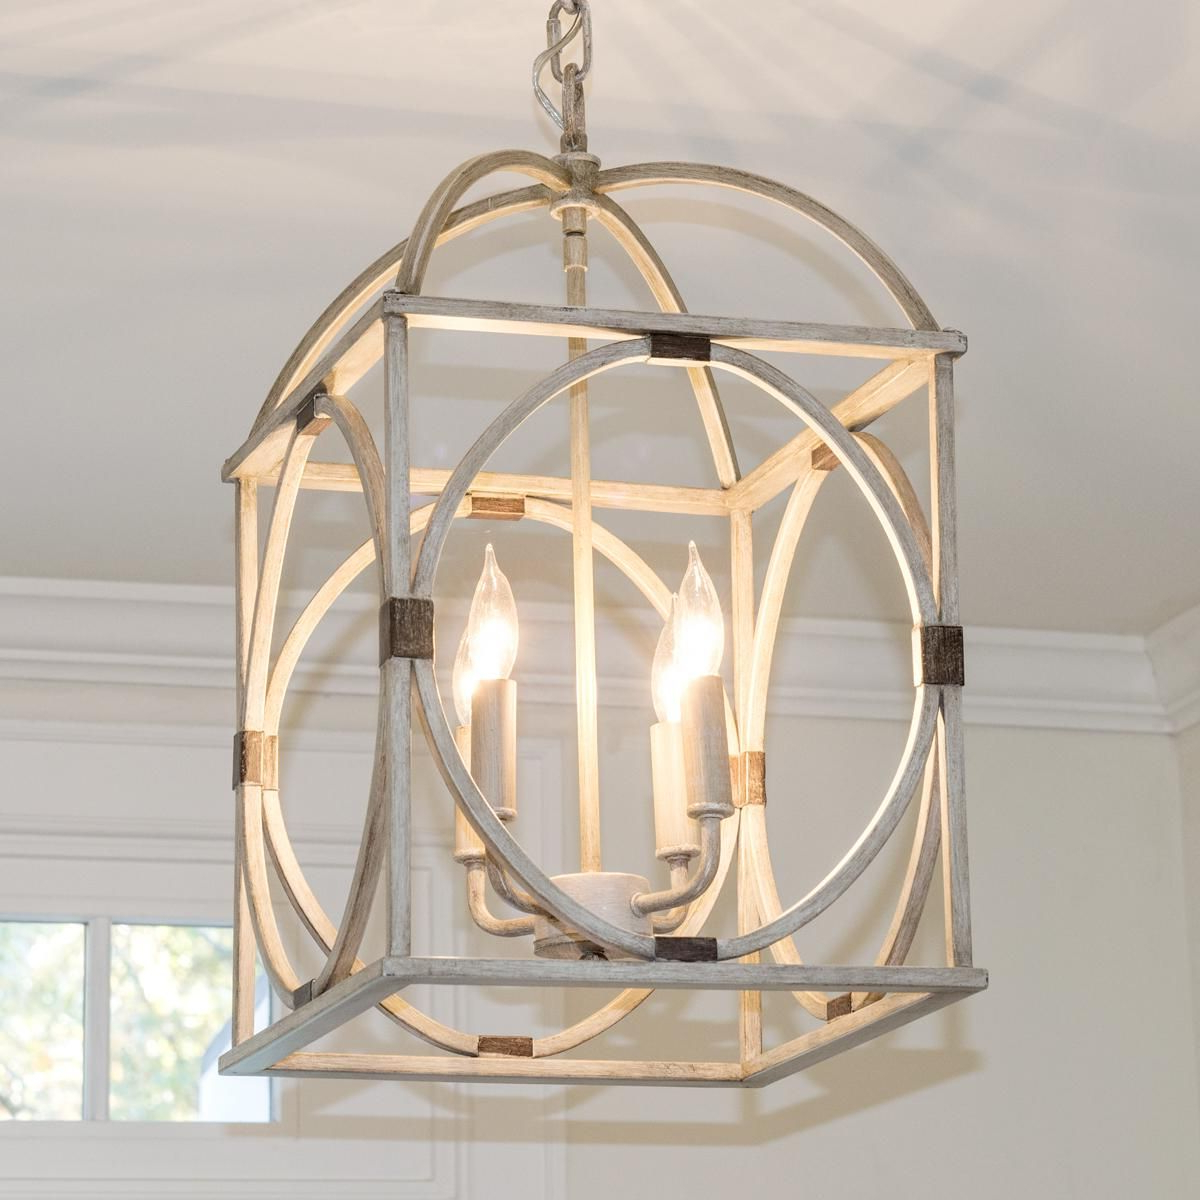 Nisbet 4 Light Lantern Geometric Pendants Throughout Best And Newest Circle Lattice Hanging Lantern – 4 Light (View 9 of 25)